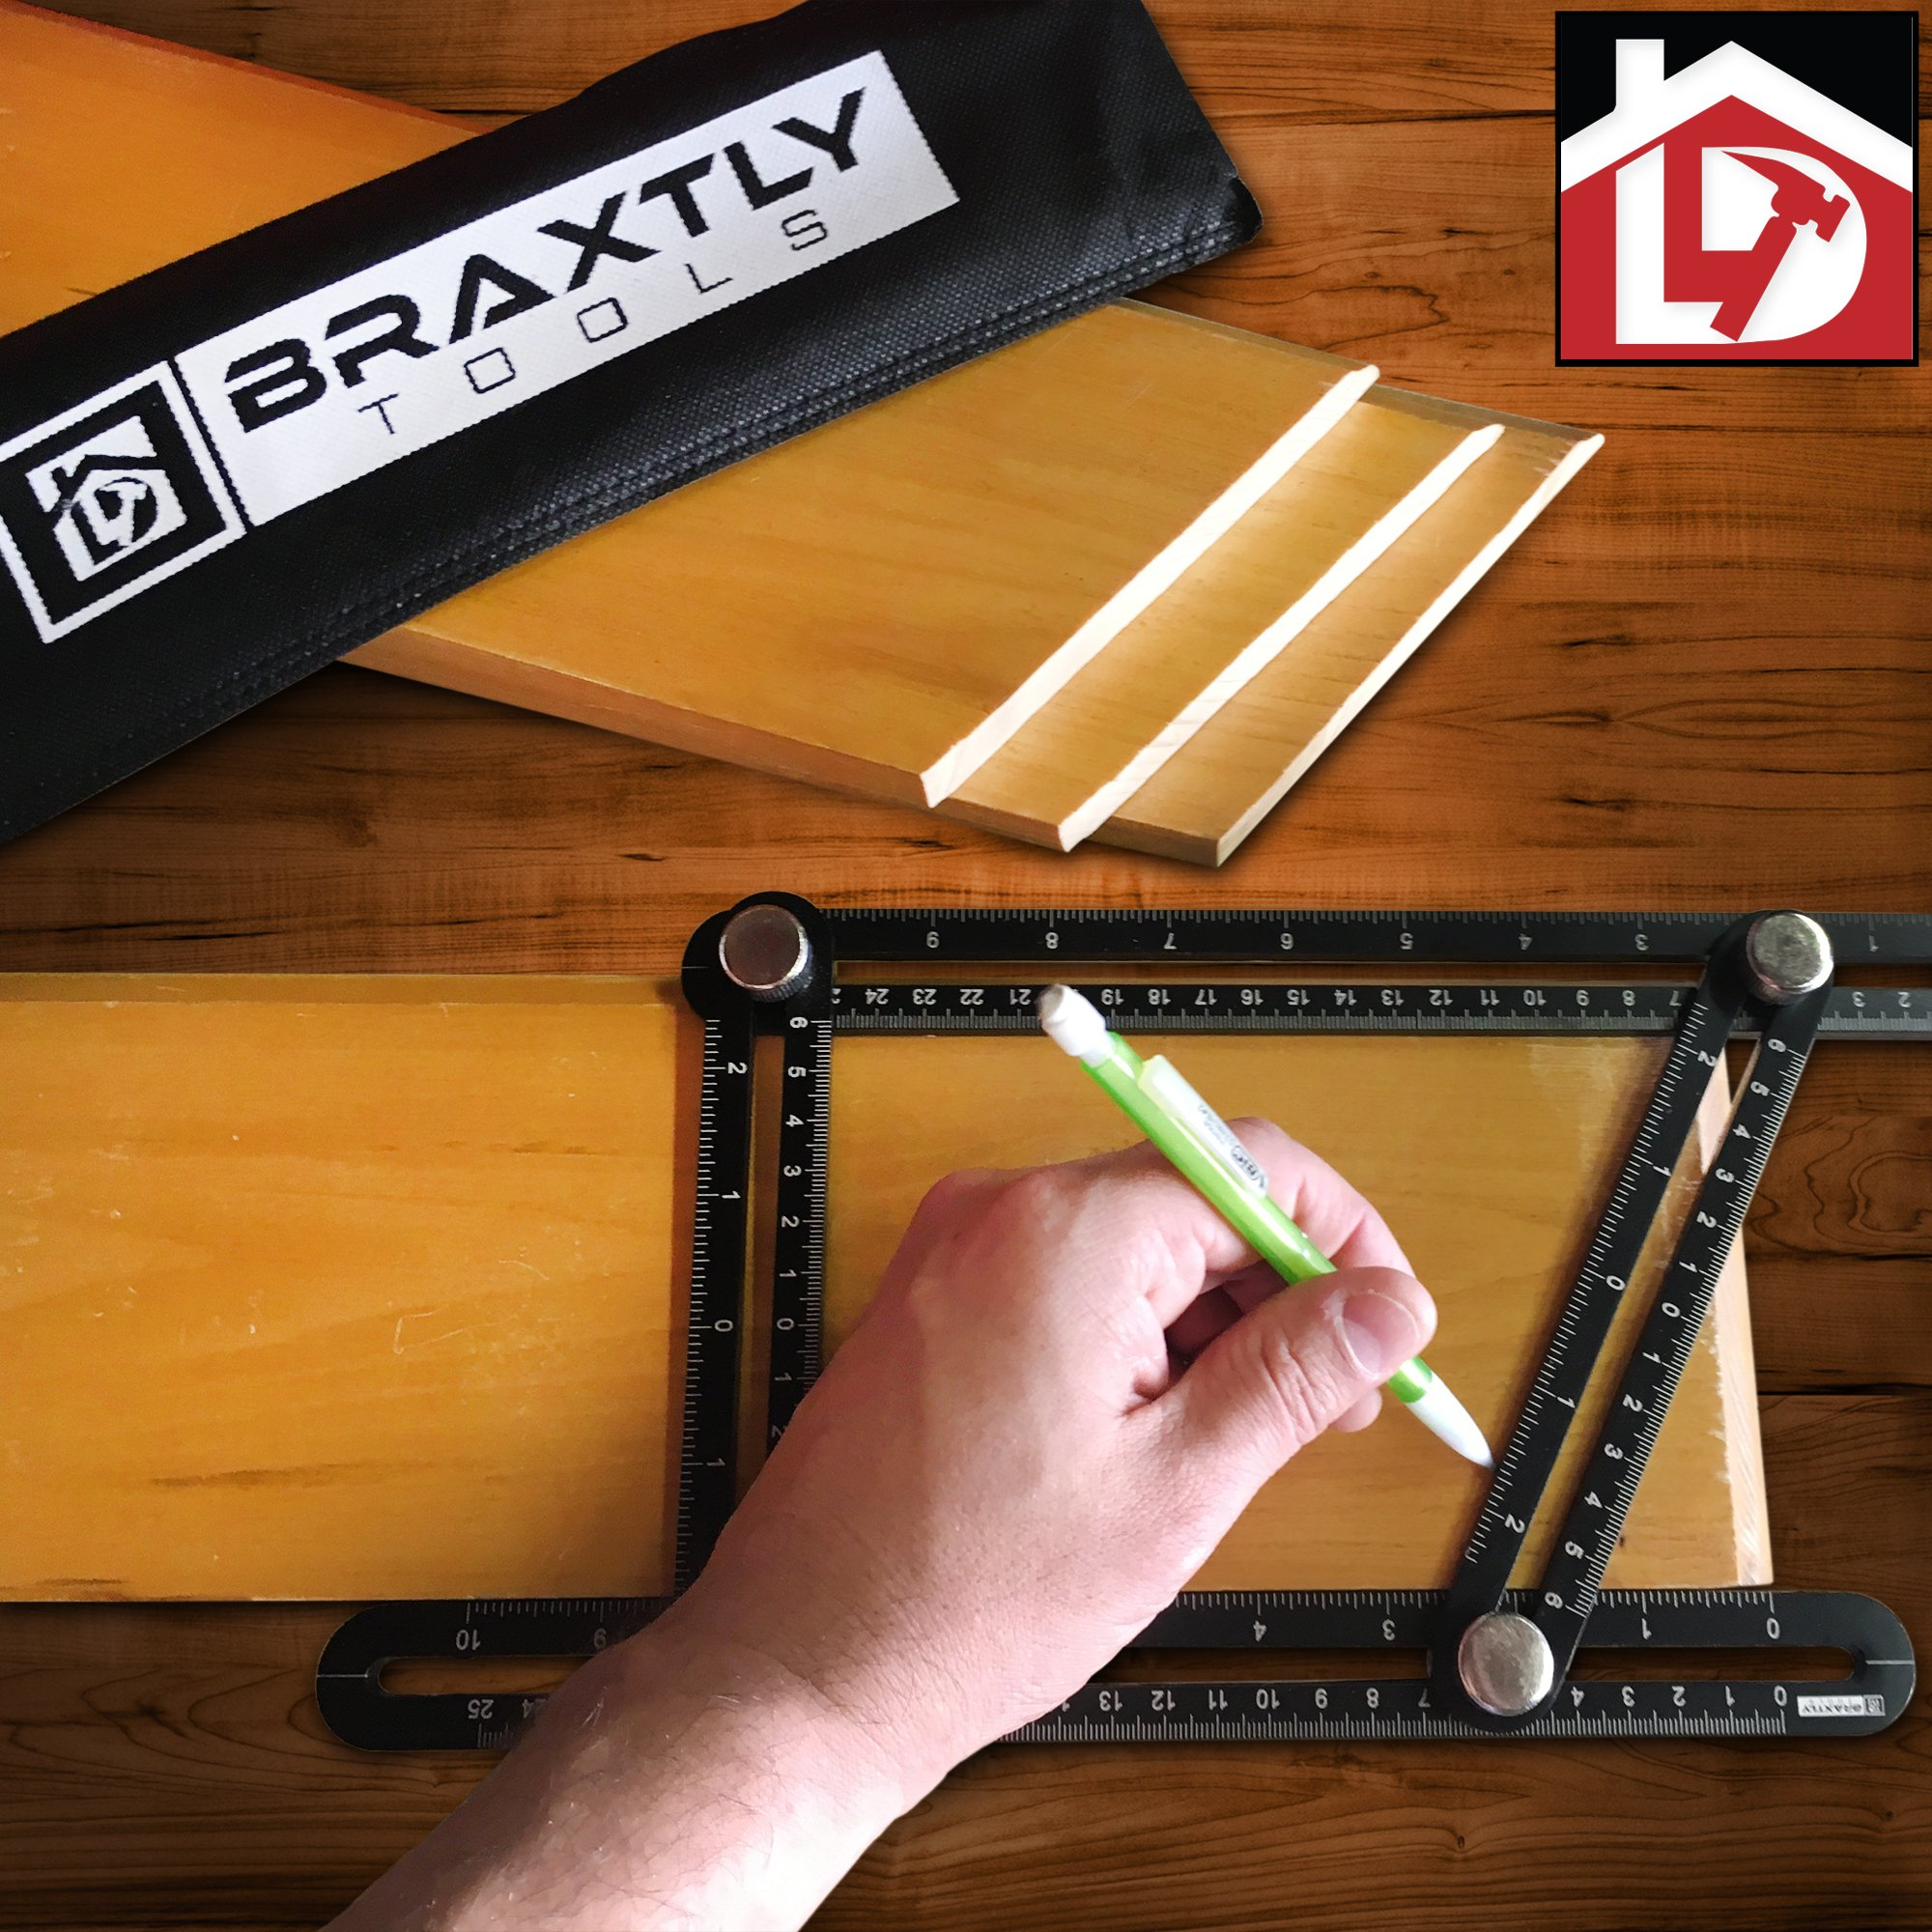 Braxtly Tools EASY ANGLE-ER HEAVY DUTY Template Tool - Ultimate Multi Angle Ruler - For Measuring Angles - Made of Premium Metal Alloy- Adjustable Knobs for Precise Measurement- w/Instruction Manual by Braxtly Tools (Image #7)